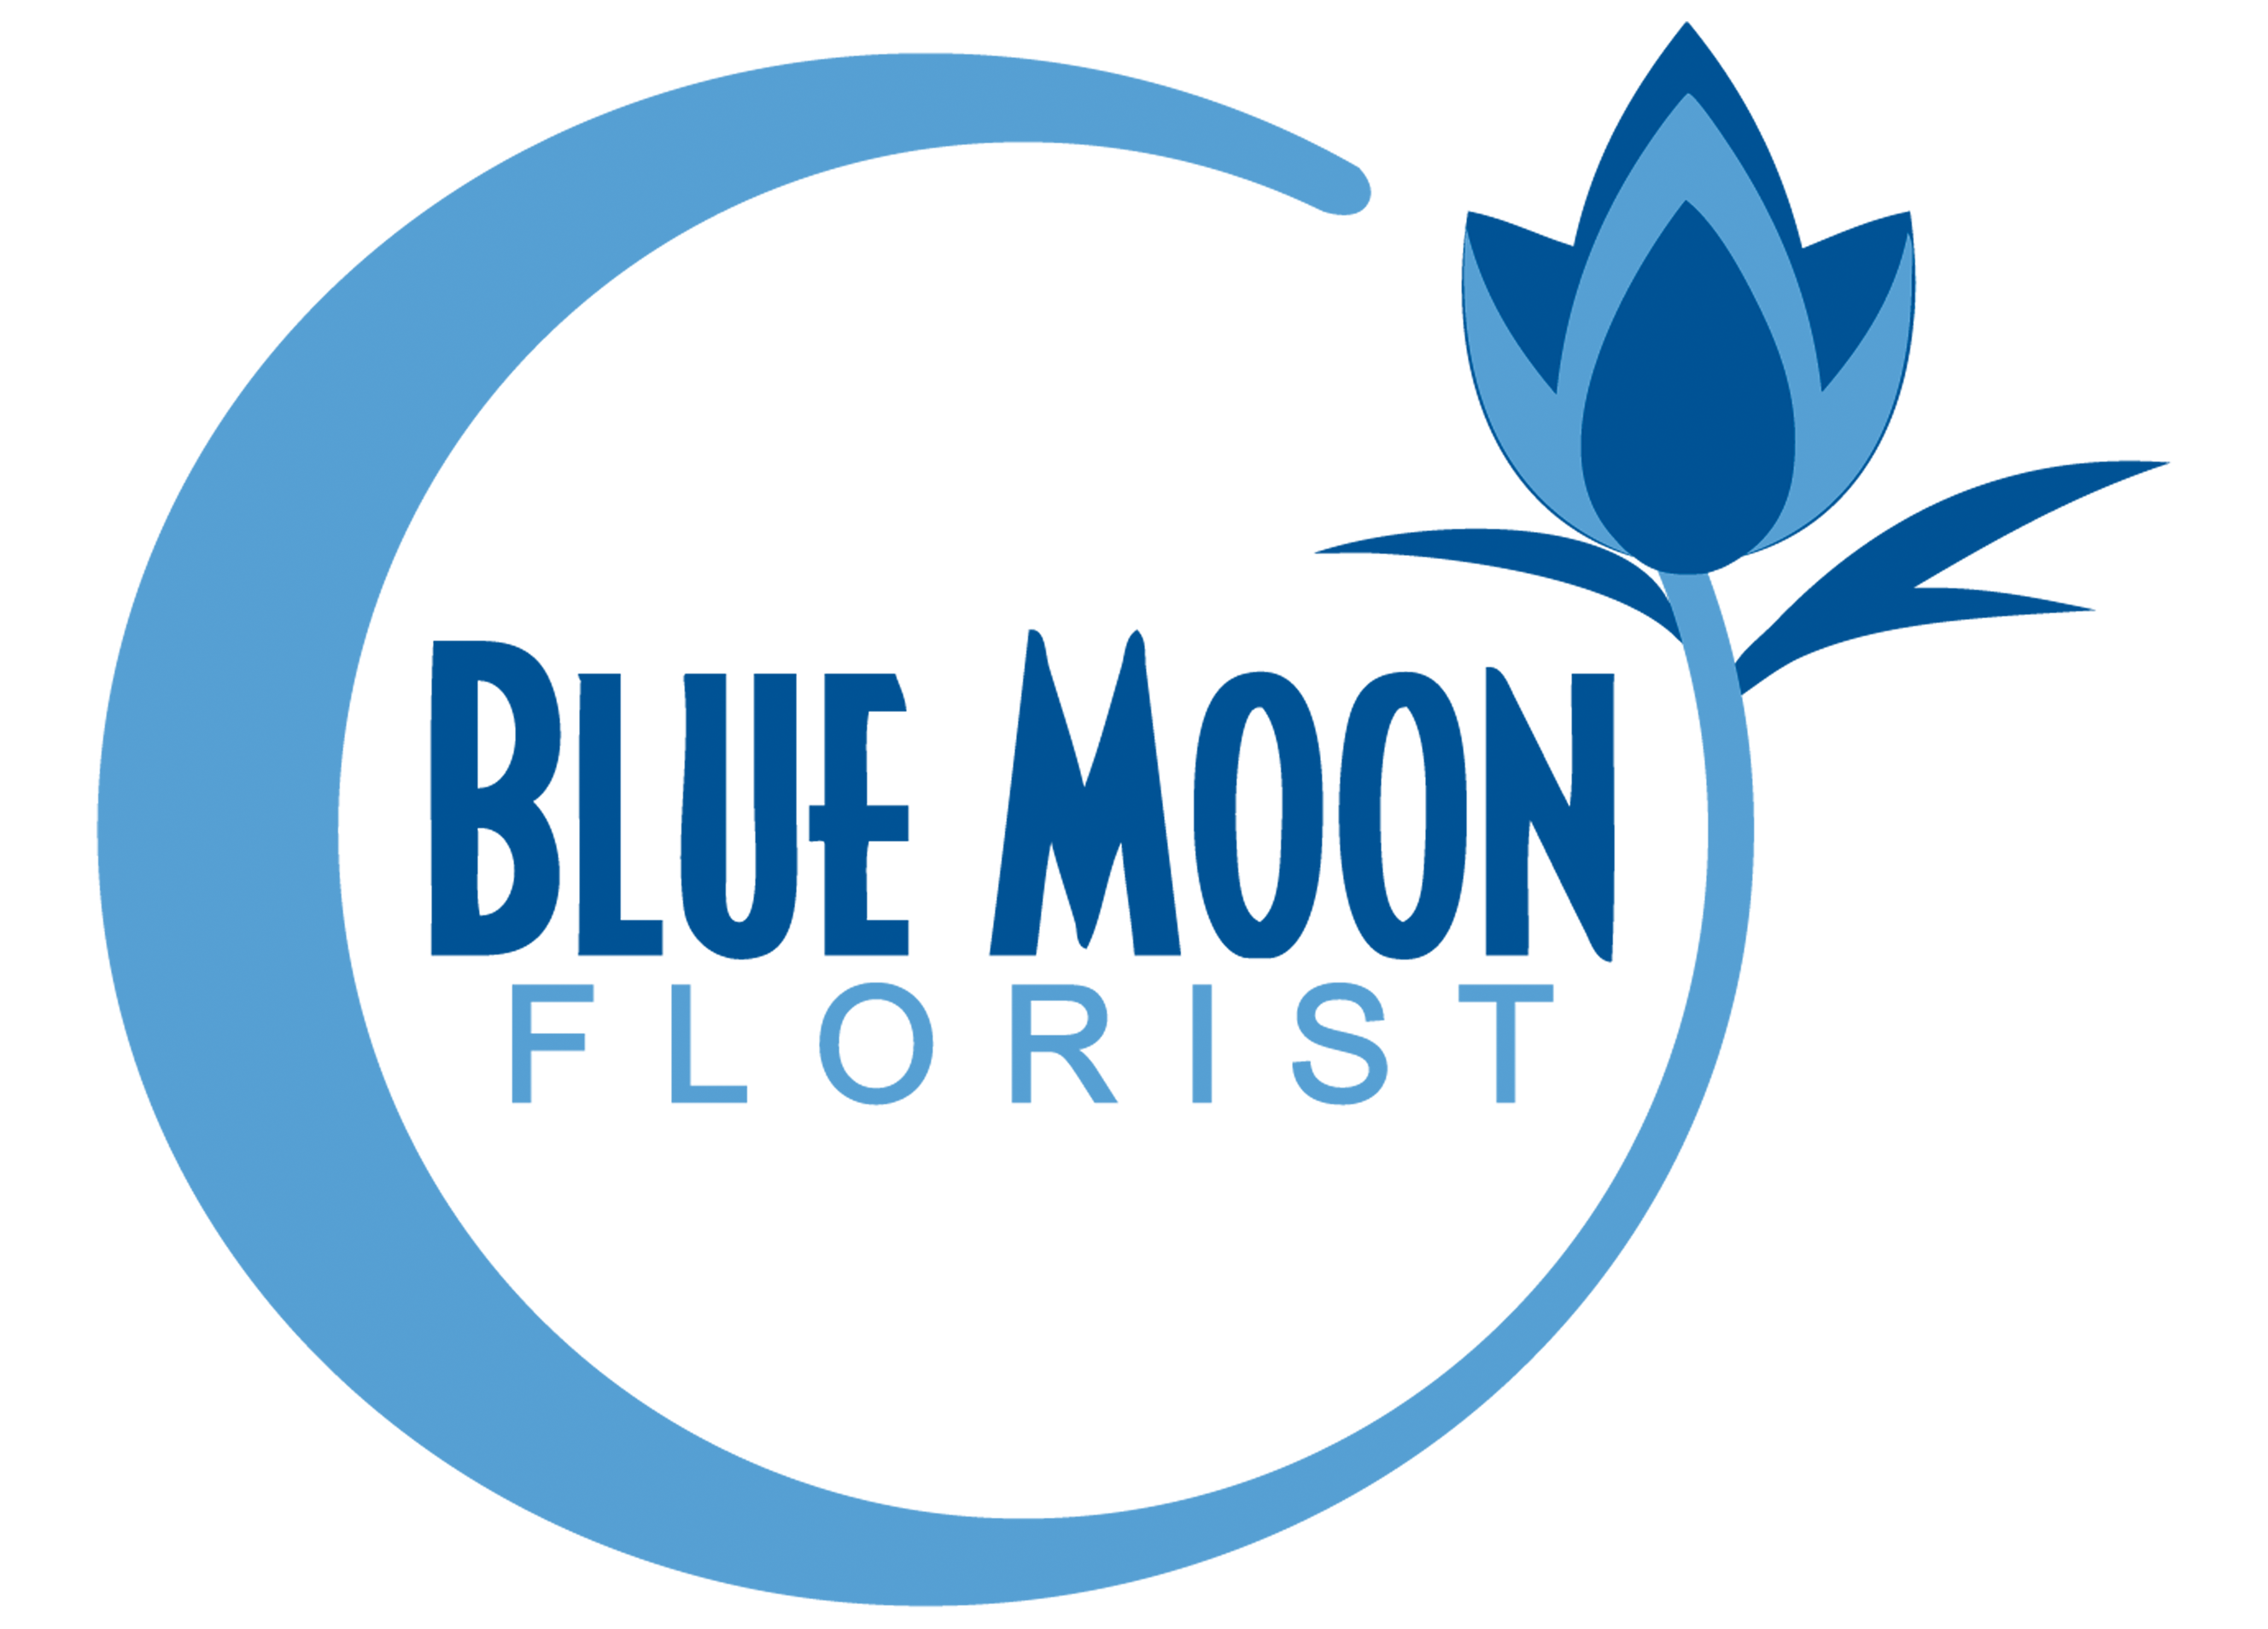 About us florist downingtown. Blue moon logo png vector